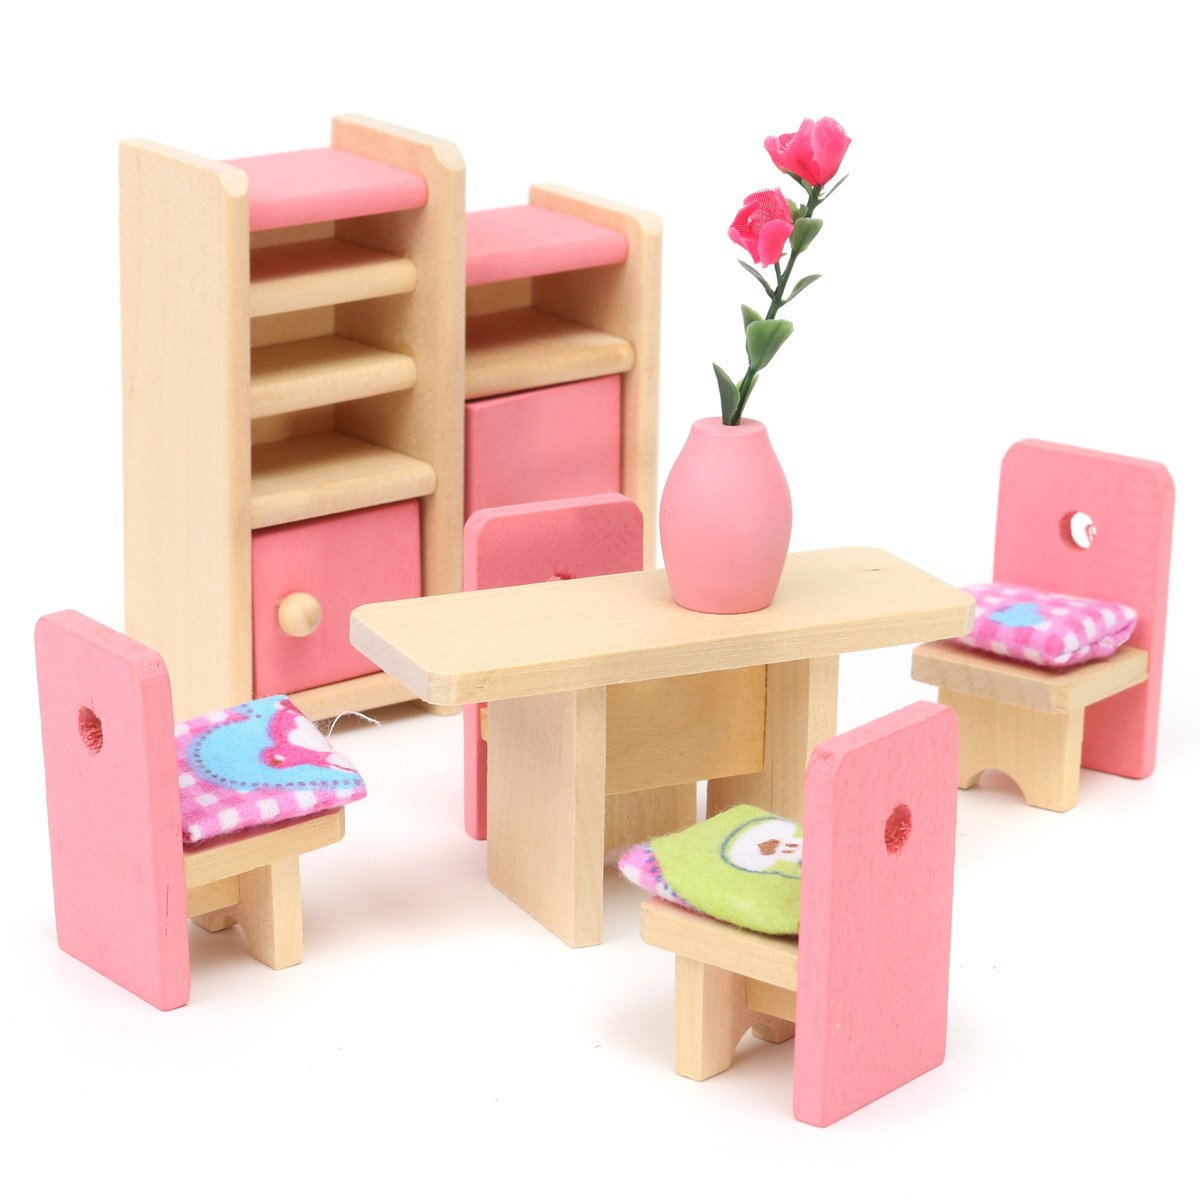 Online Furniture Stores Reviews: Child Play Furniture Reviews